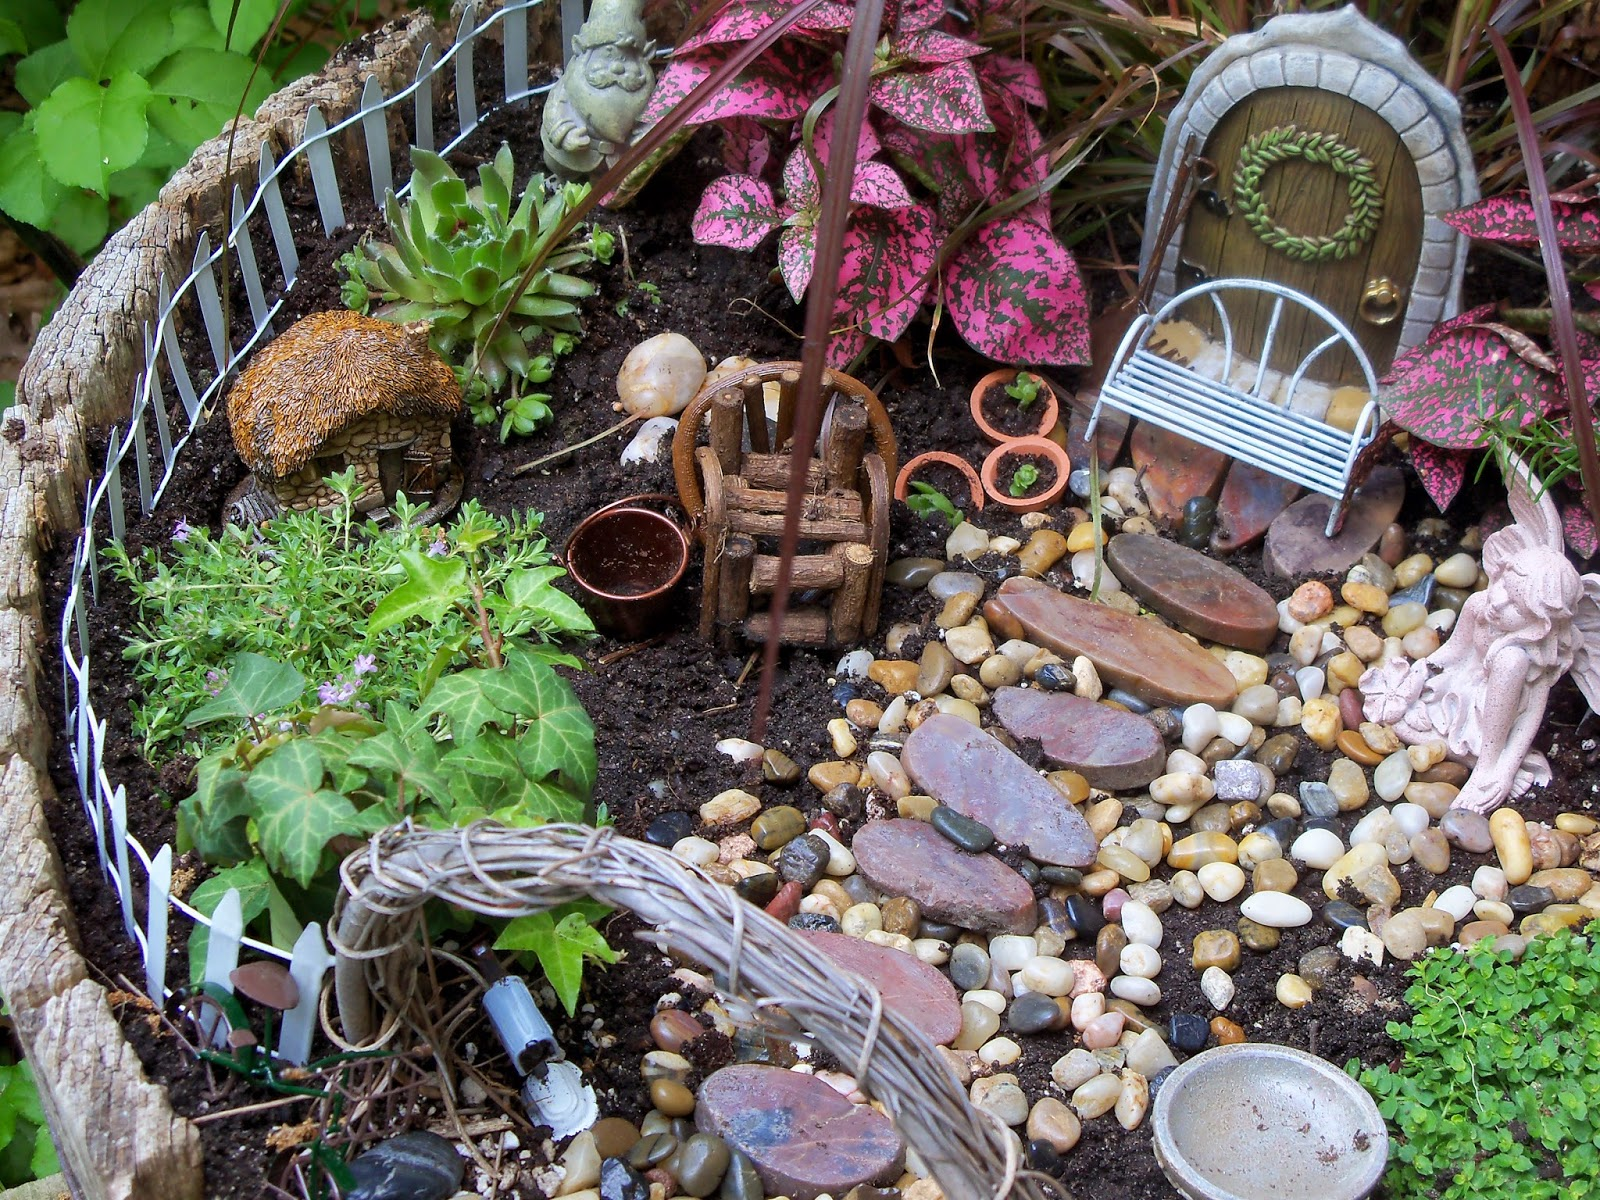 The Blue Spotted Owl Fairy Garden